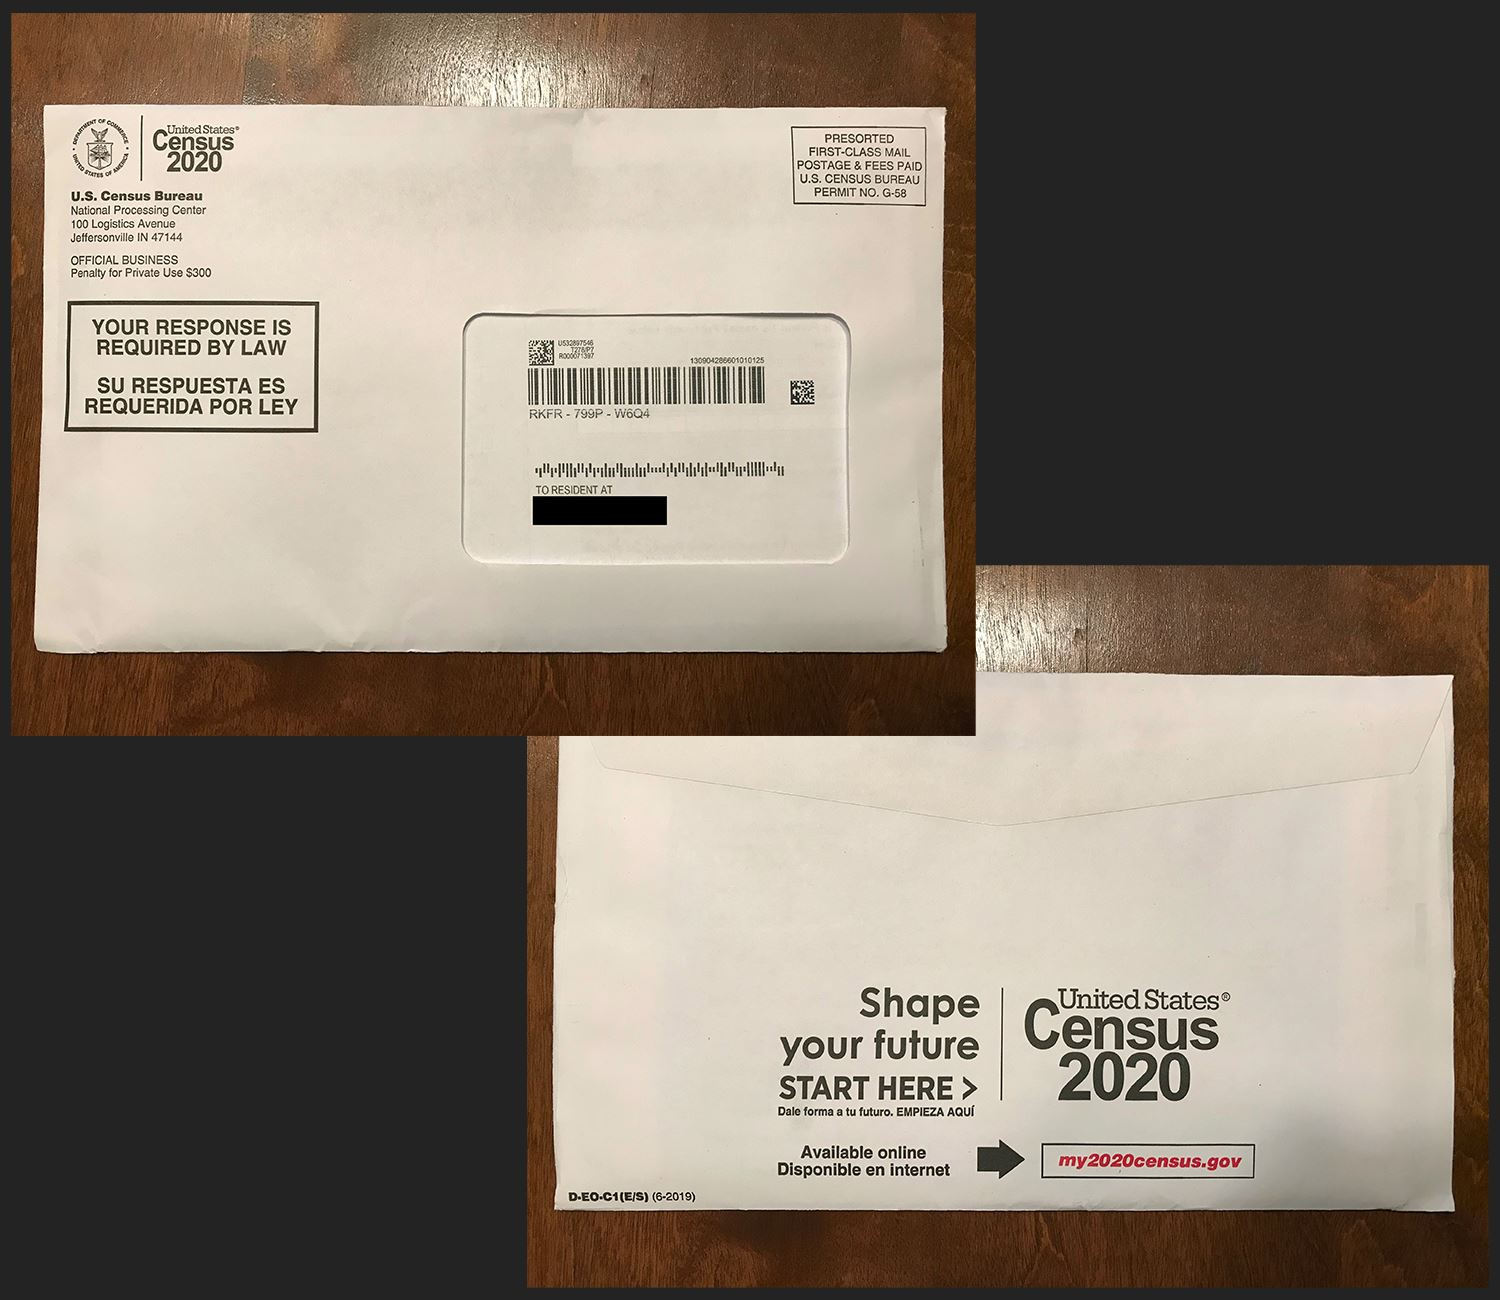 2020 Census envelope front and back side showing what it looks like